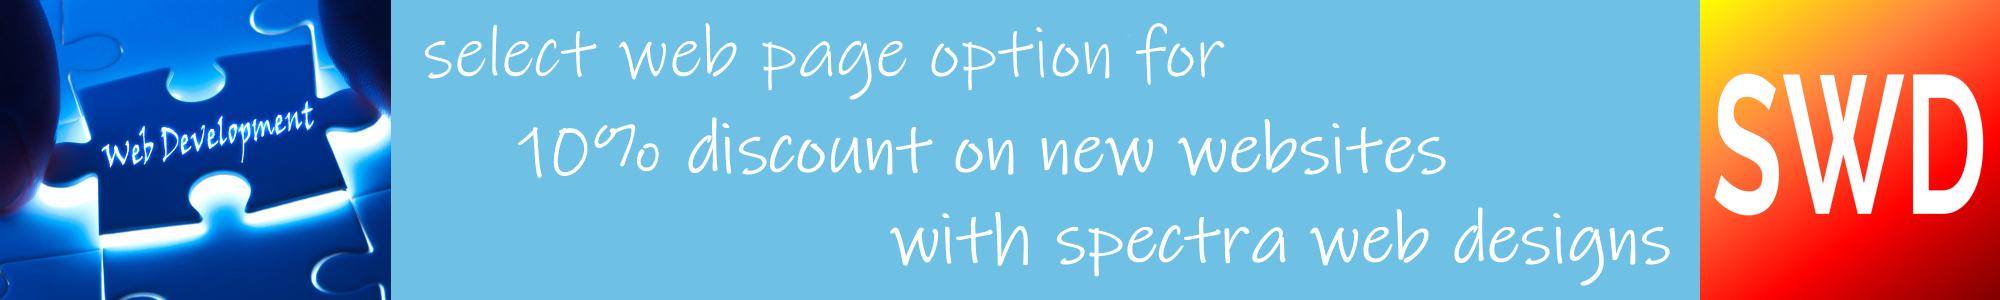 beccles business hub - Spectra Web Designs offer